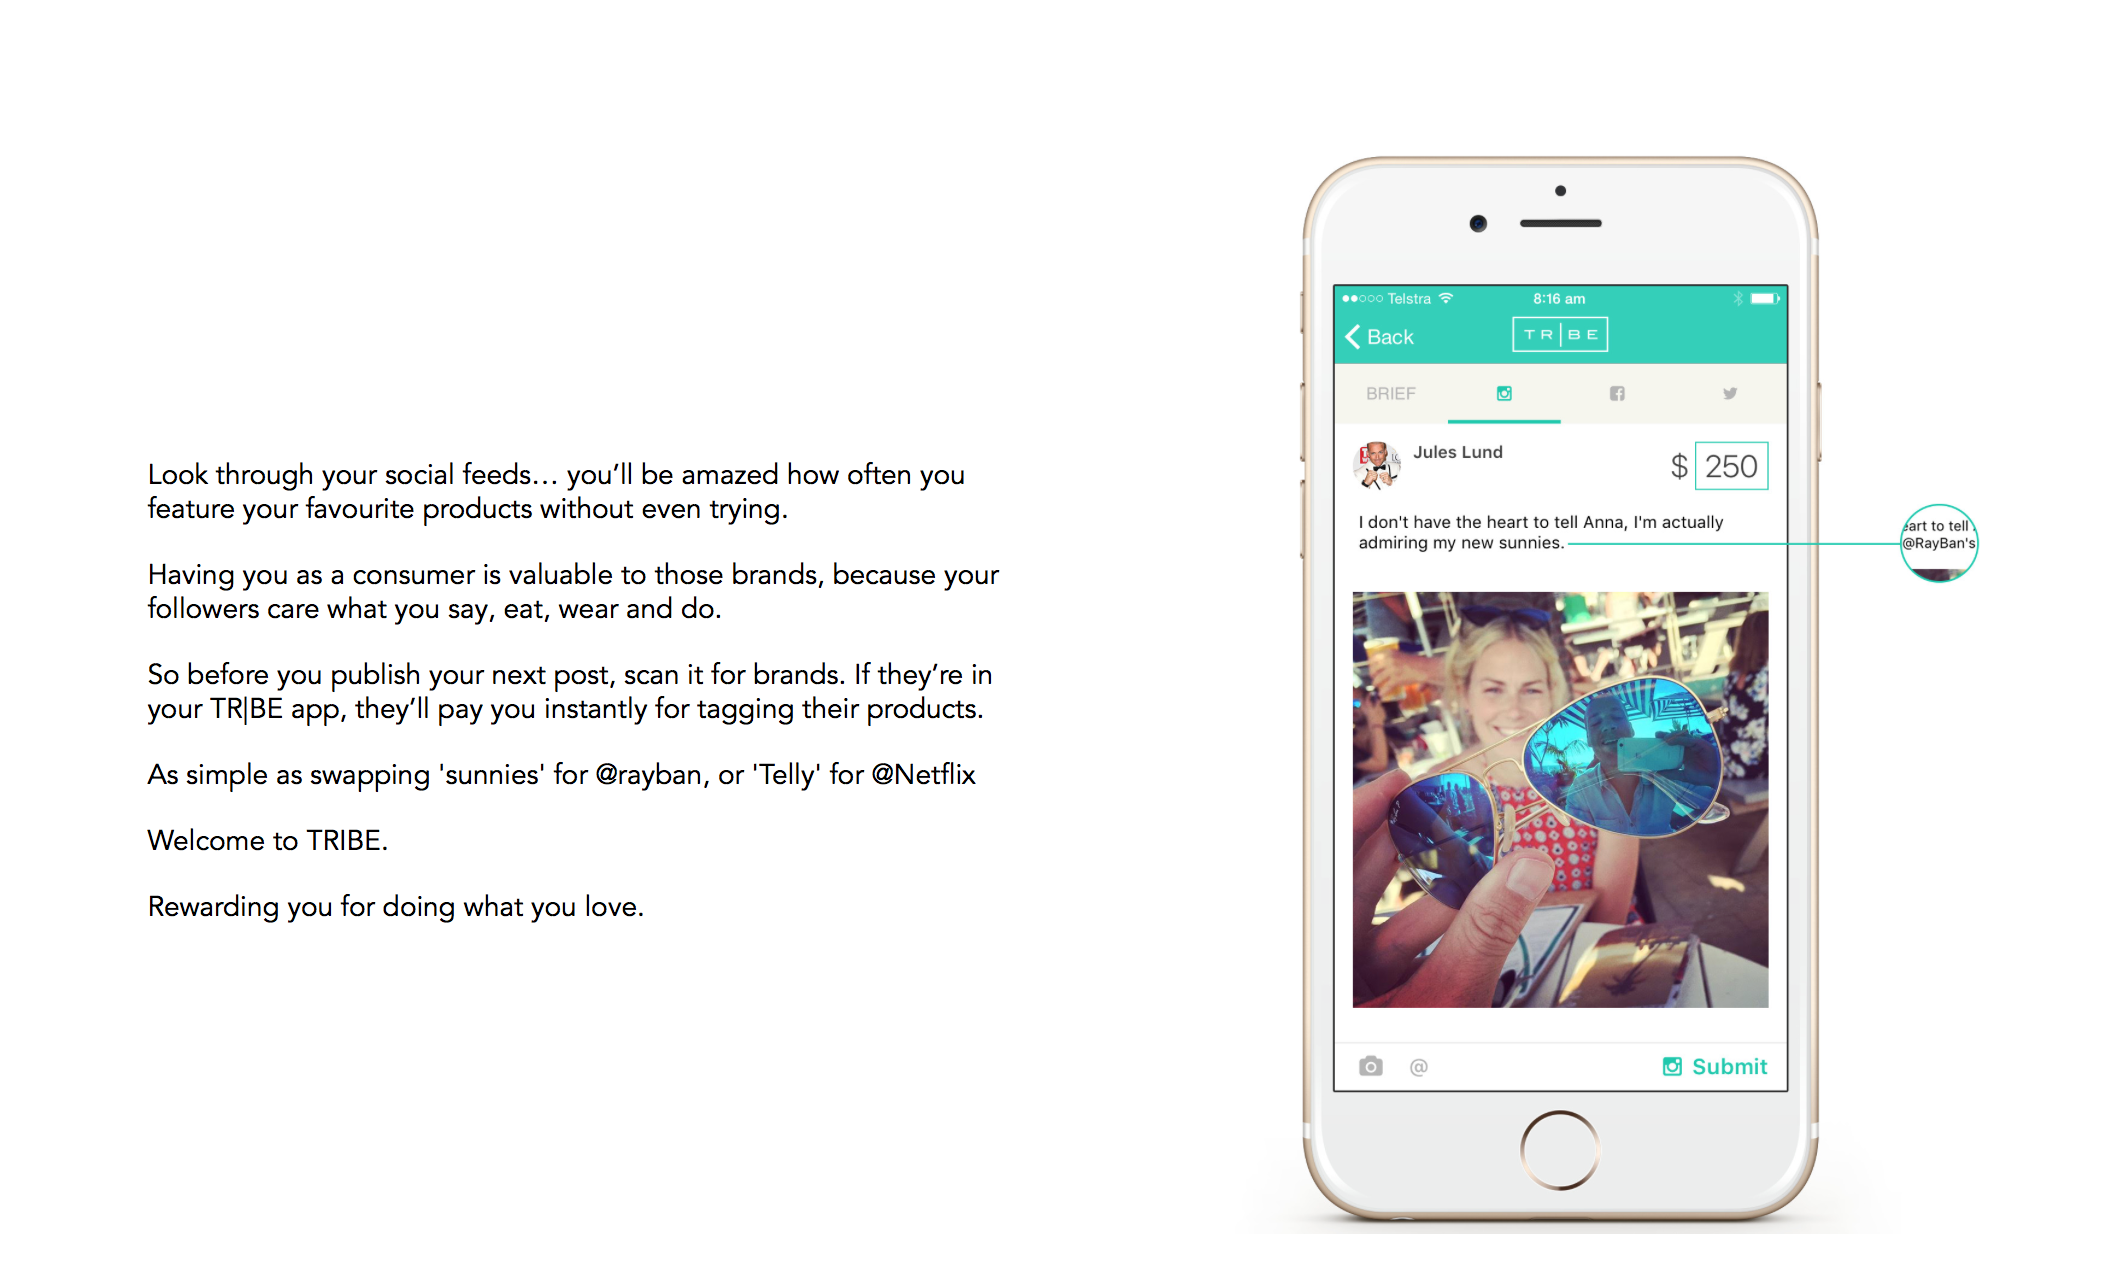 An example of what a sponsored post can look like as you submit your idea to the brand via the Tribe app.